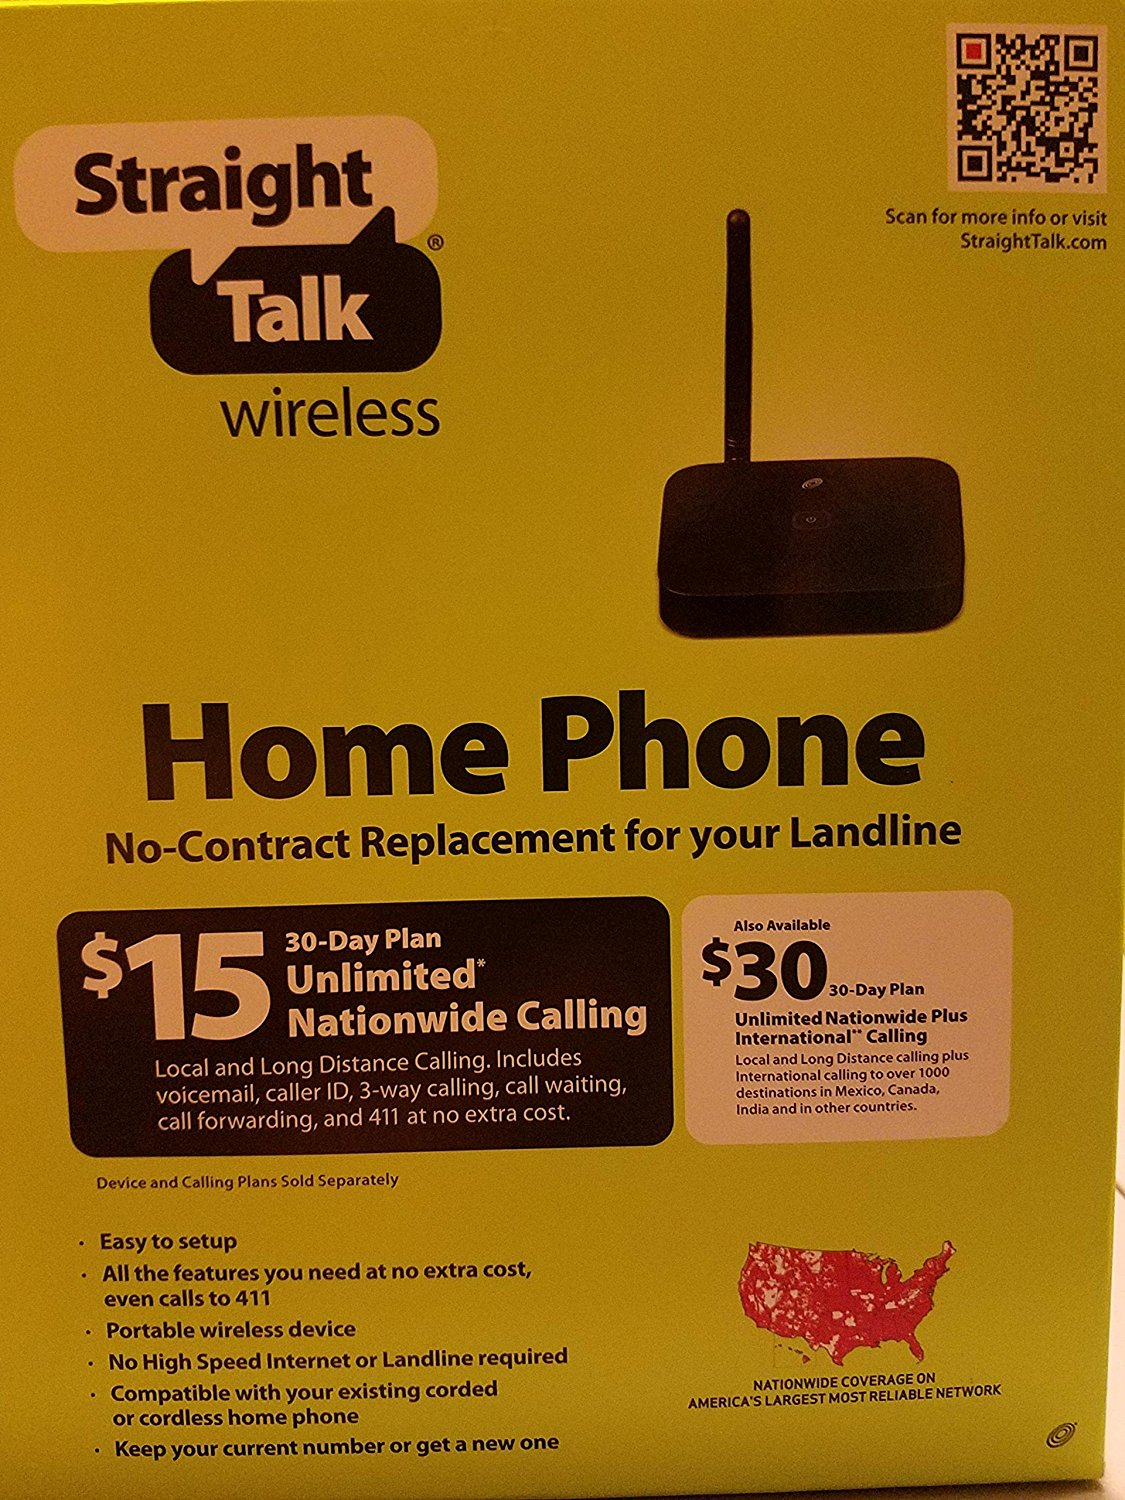 Straight Talk Wireless Home Phone No-Contract Replacement for Landline